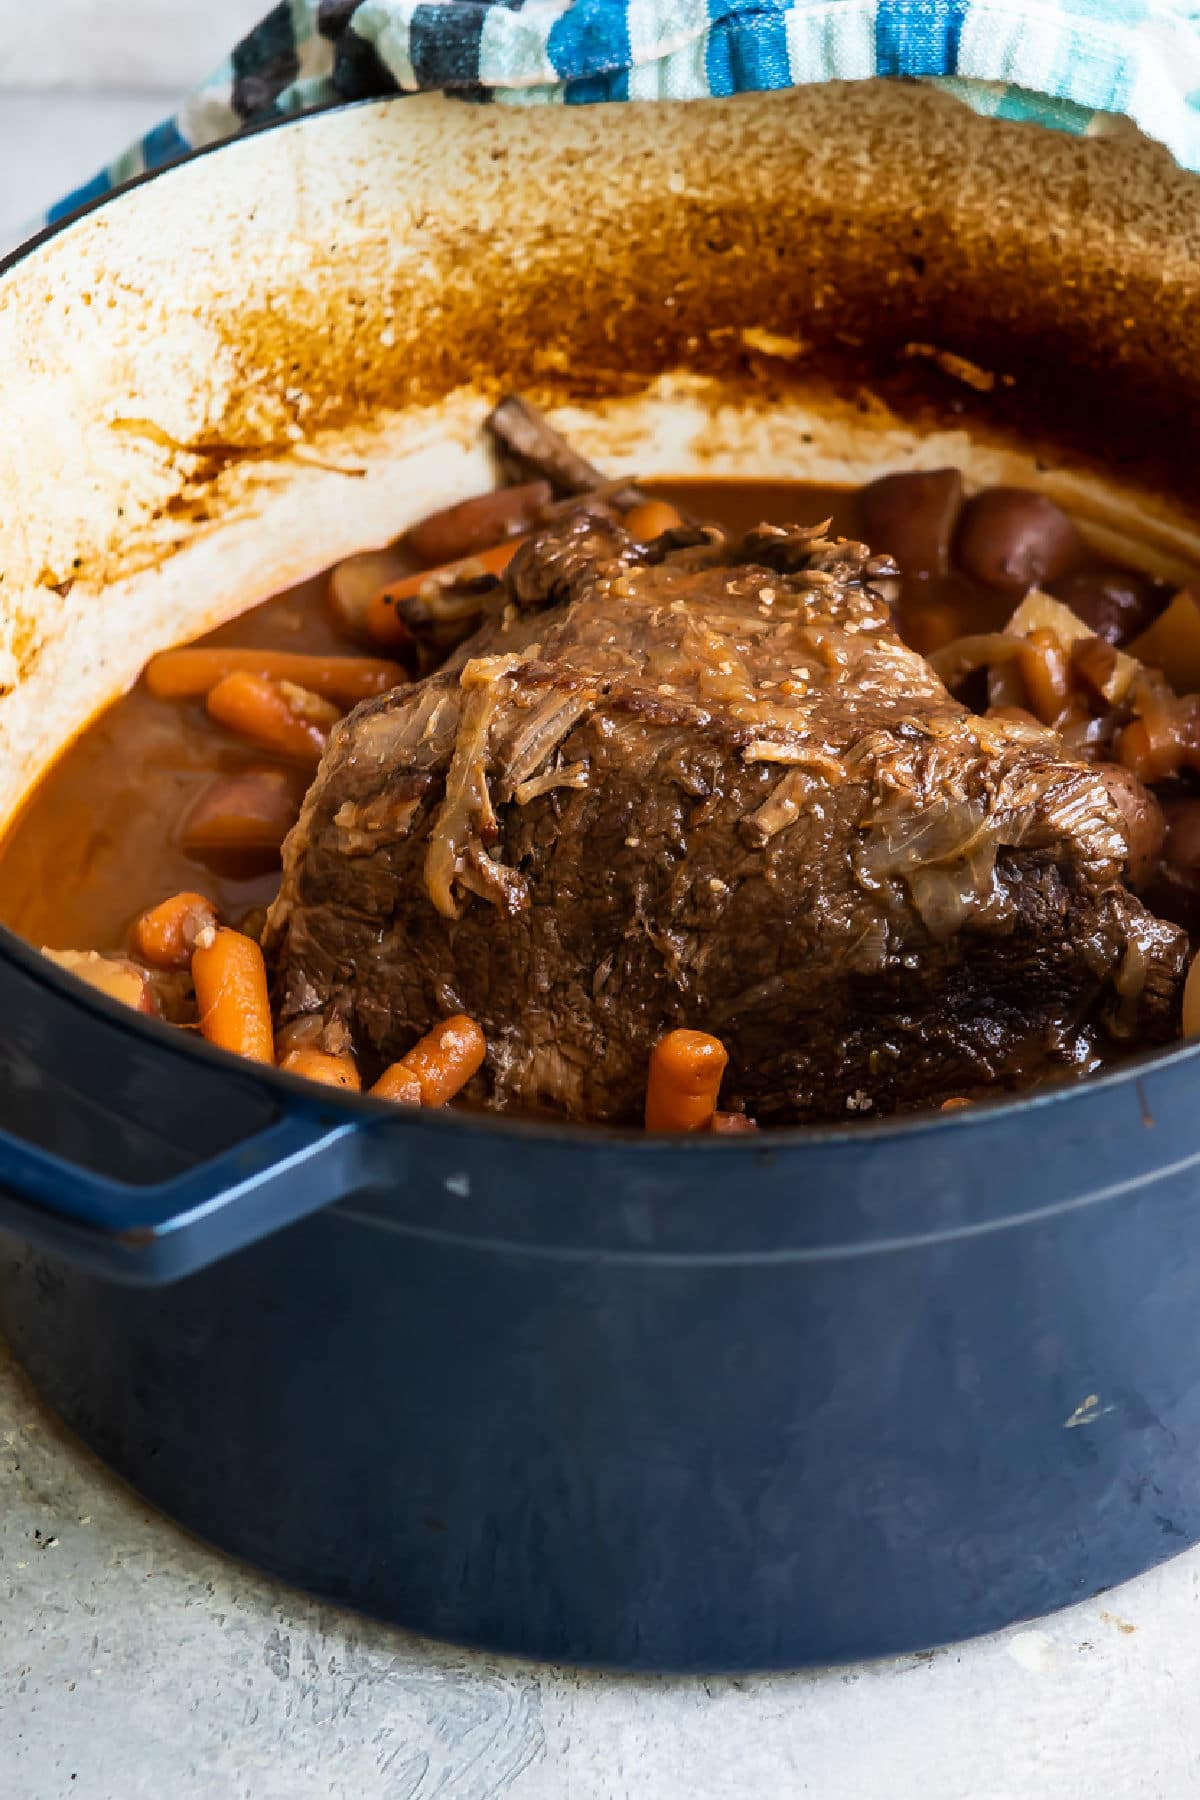 Cooked pot roast in a Dutch oven.